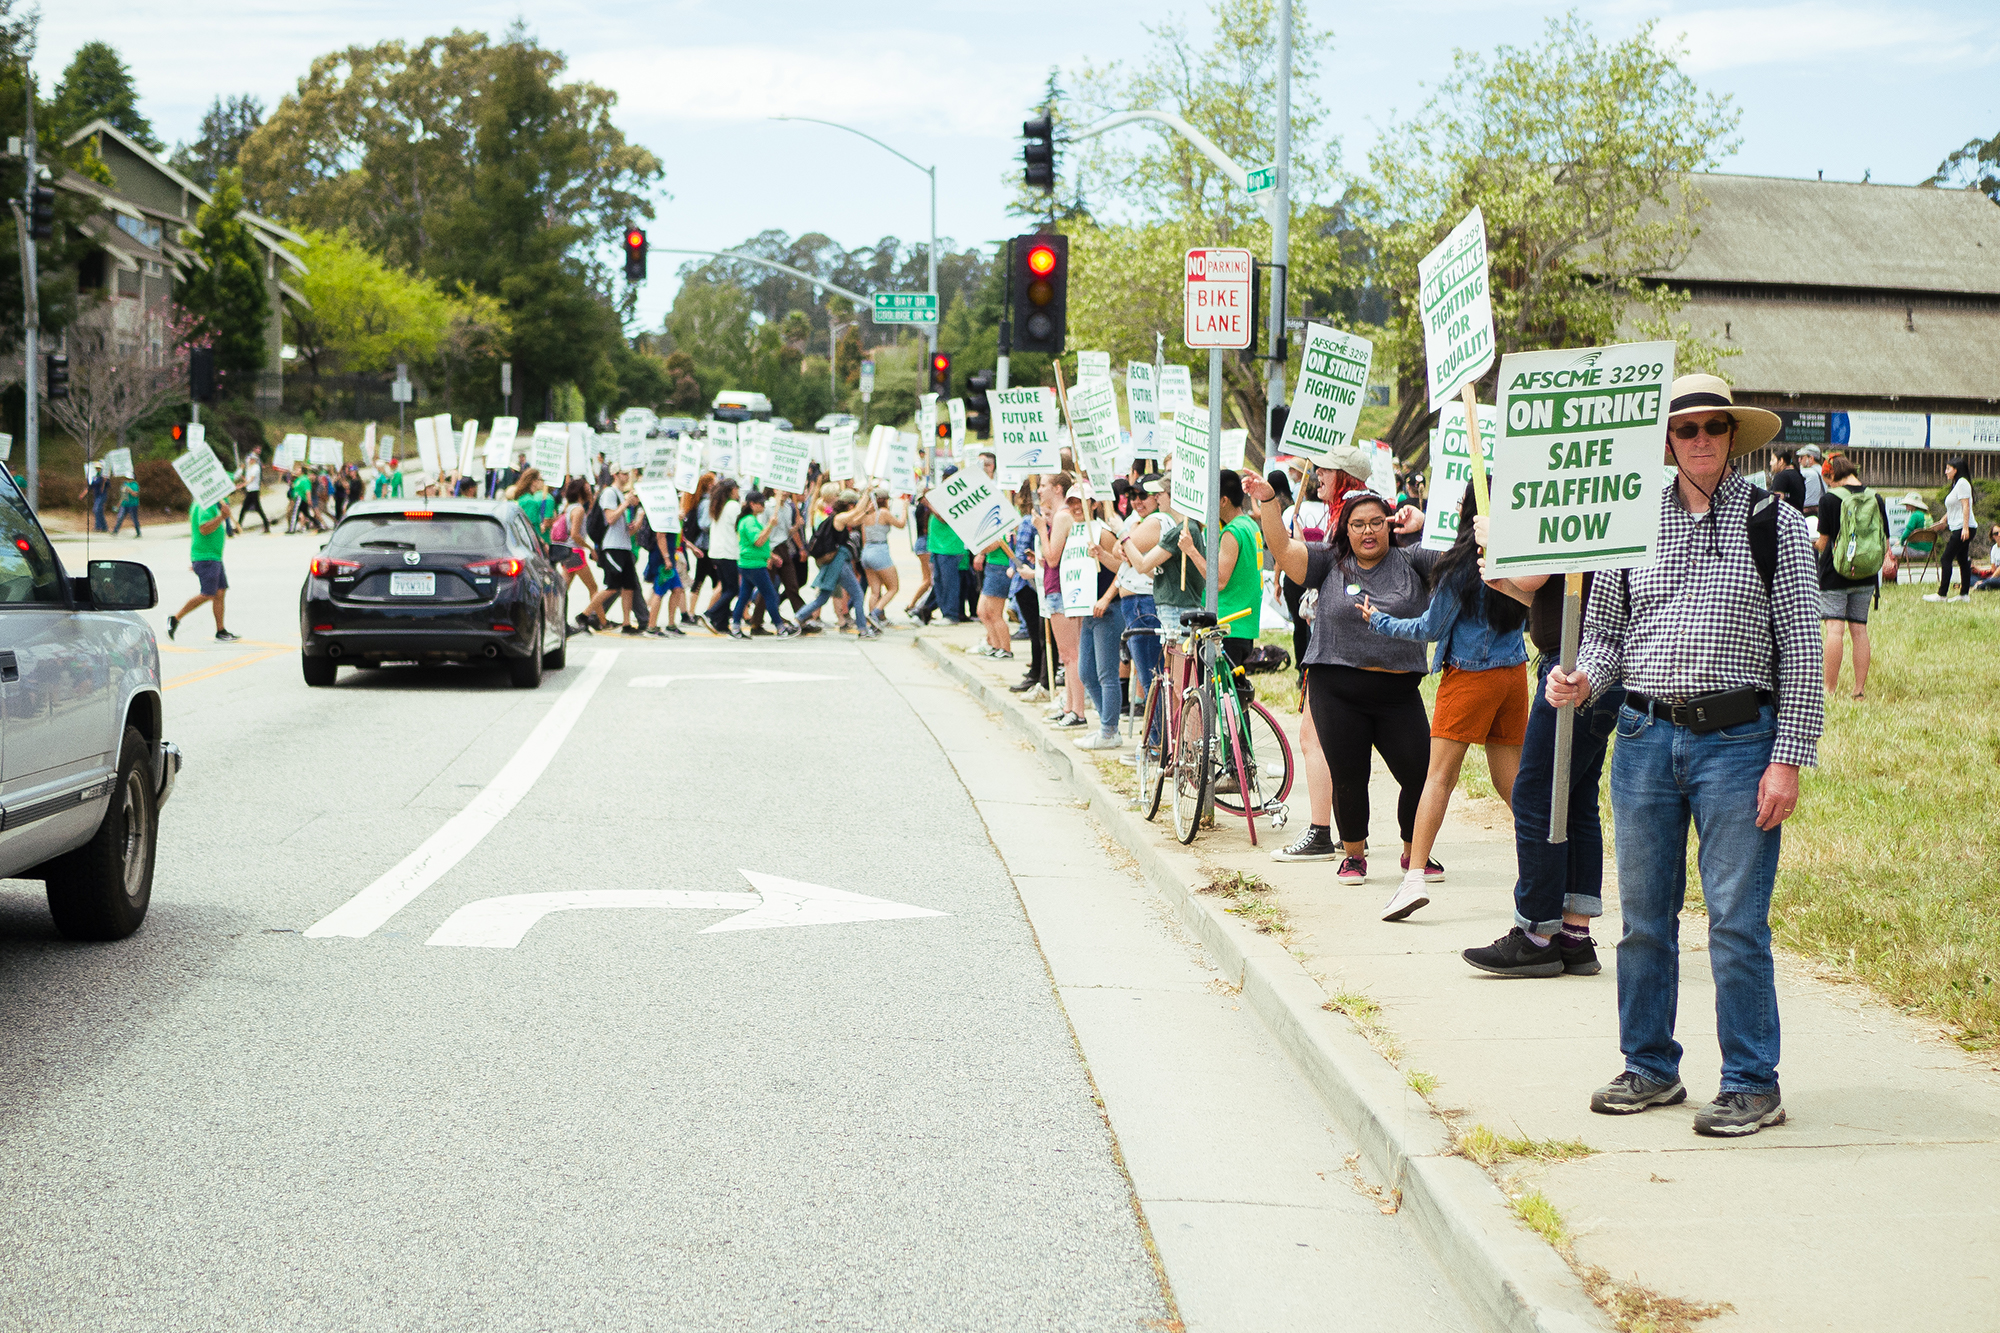 AFSCME Draws the Line